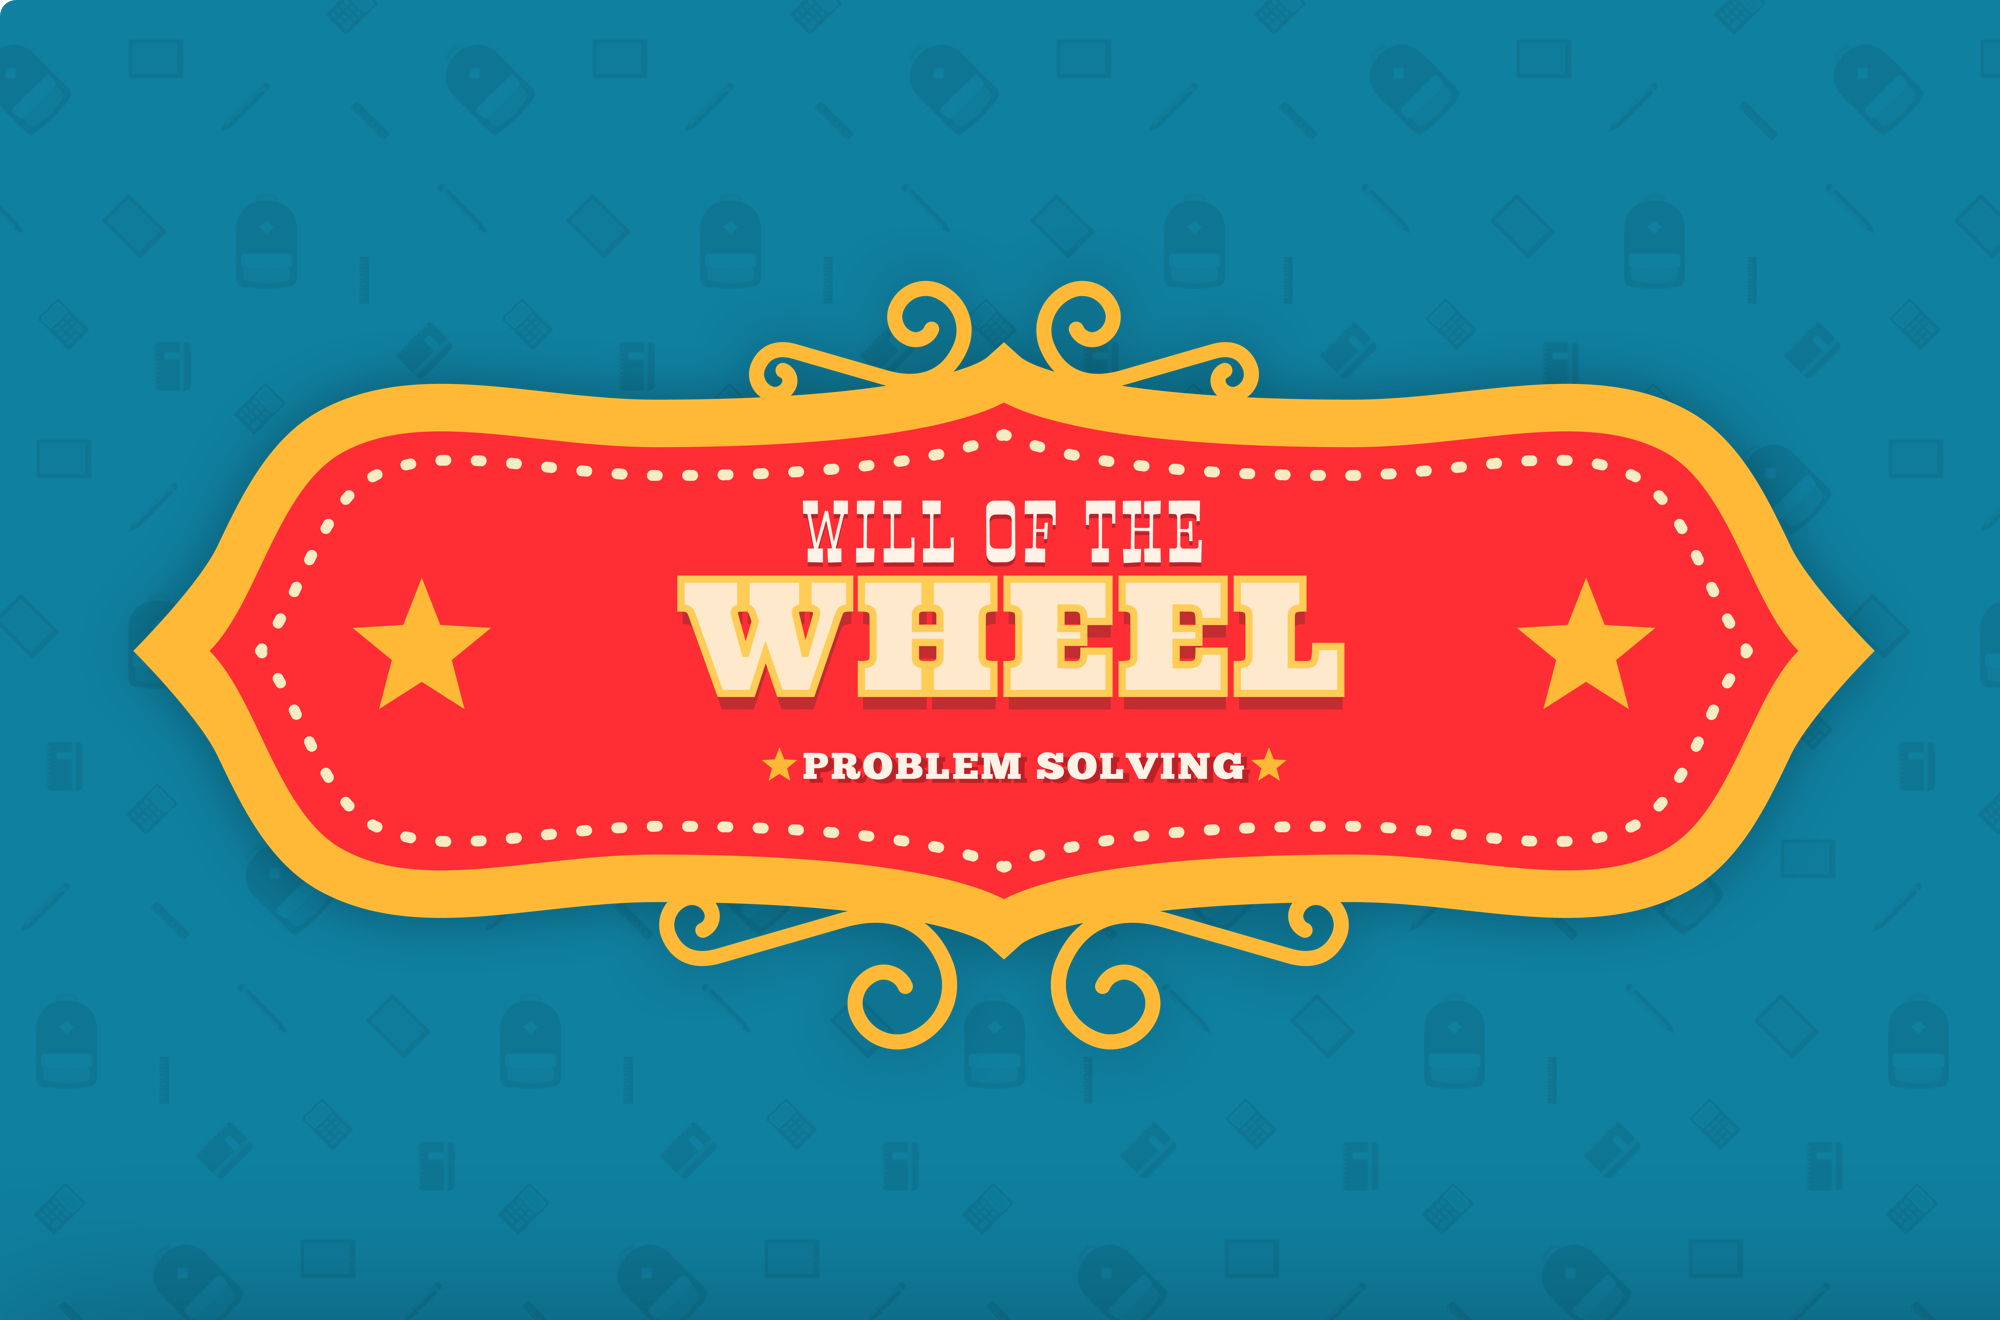 Will of the Wheel: Problem Solving